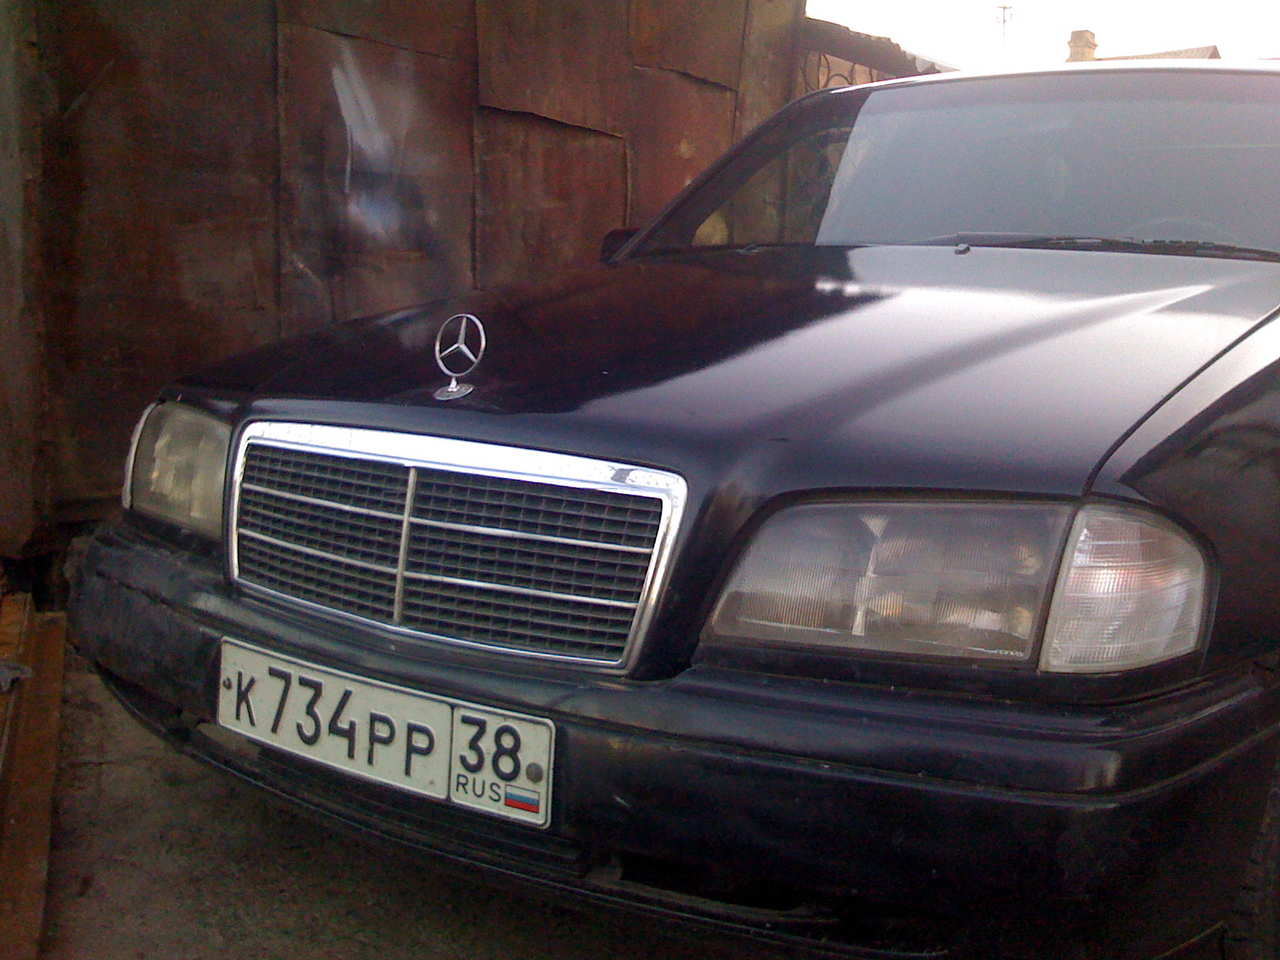 Used 1992 mercedes benz c class photos 2000cc diesel for Common problems with mercedes benz c class